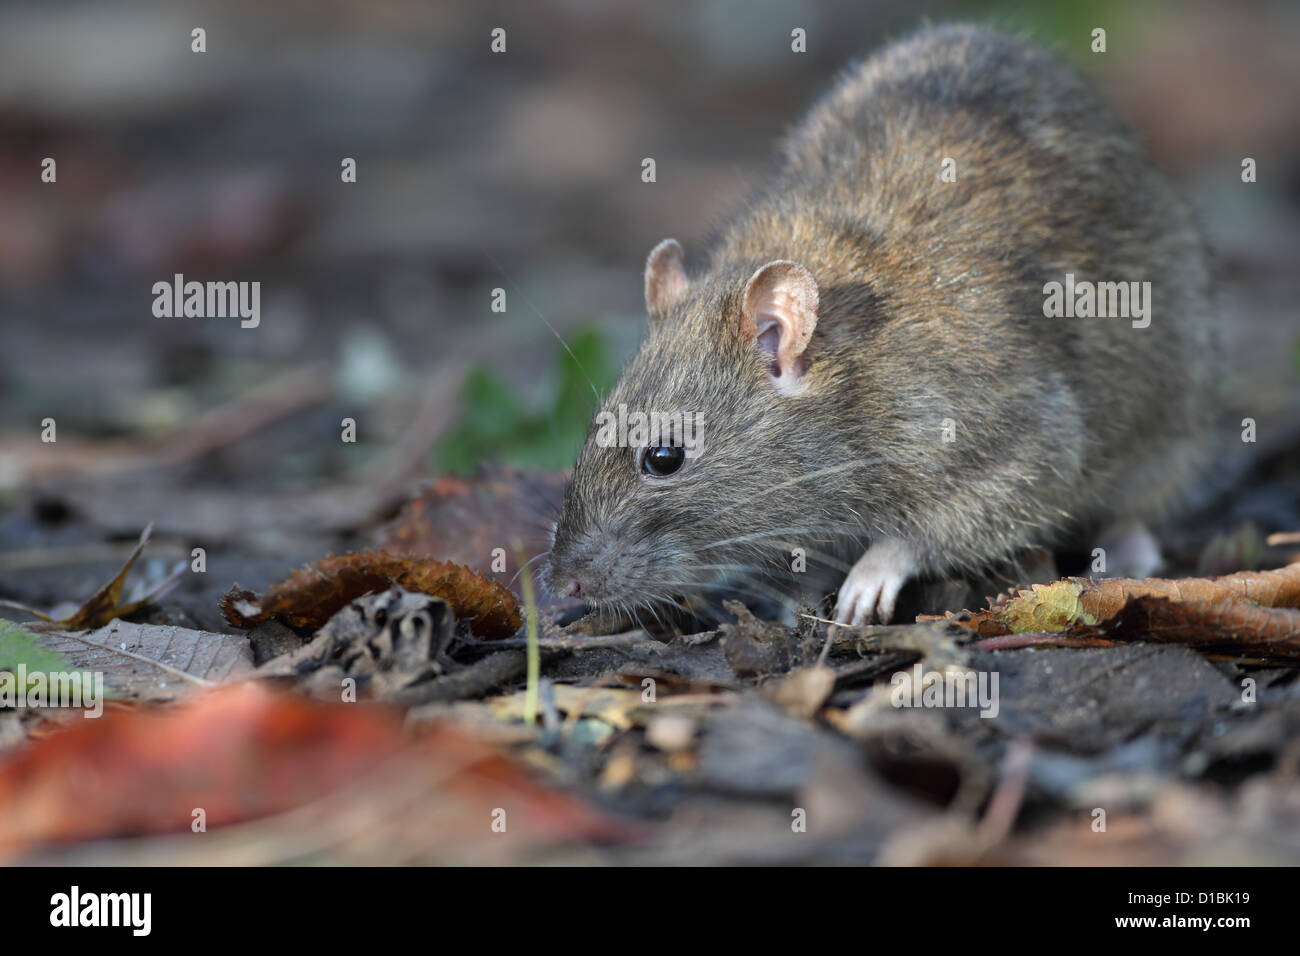 Brown Common Sewer Hanover Norway Norwegian Wharf Rat (Rattus norvegicus) - Stock Image